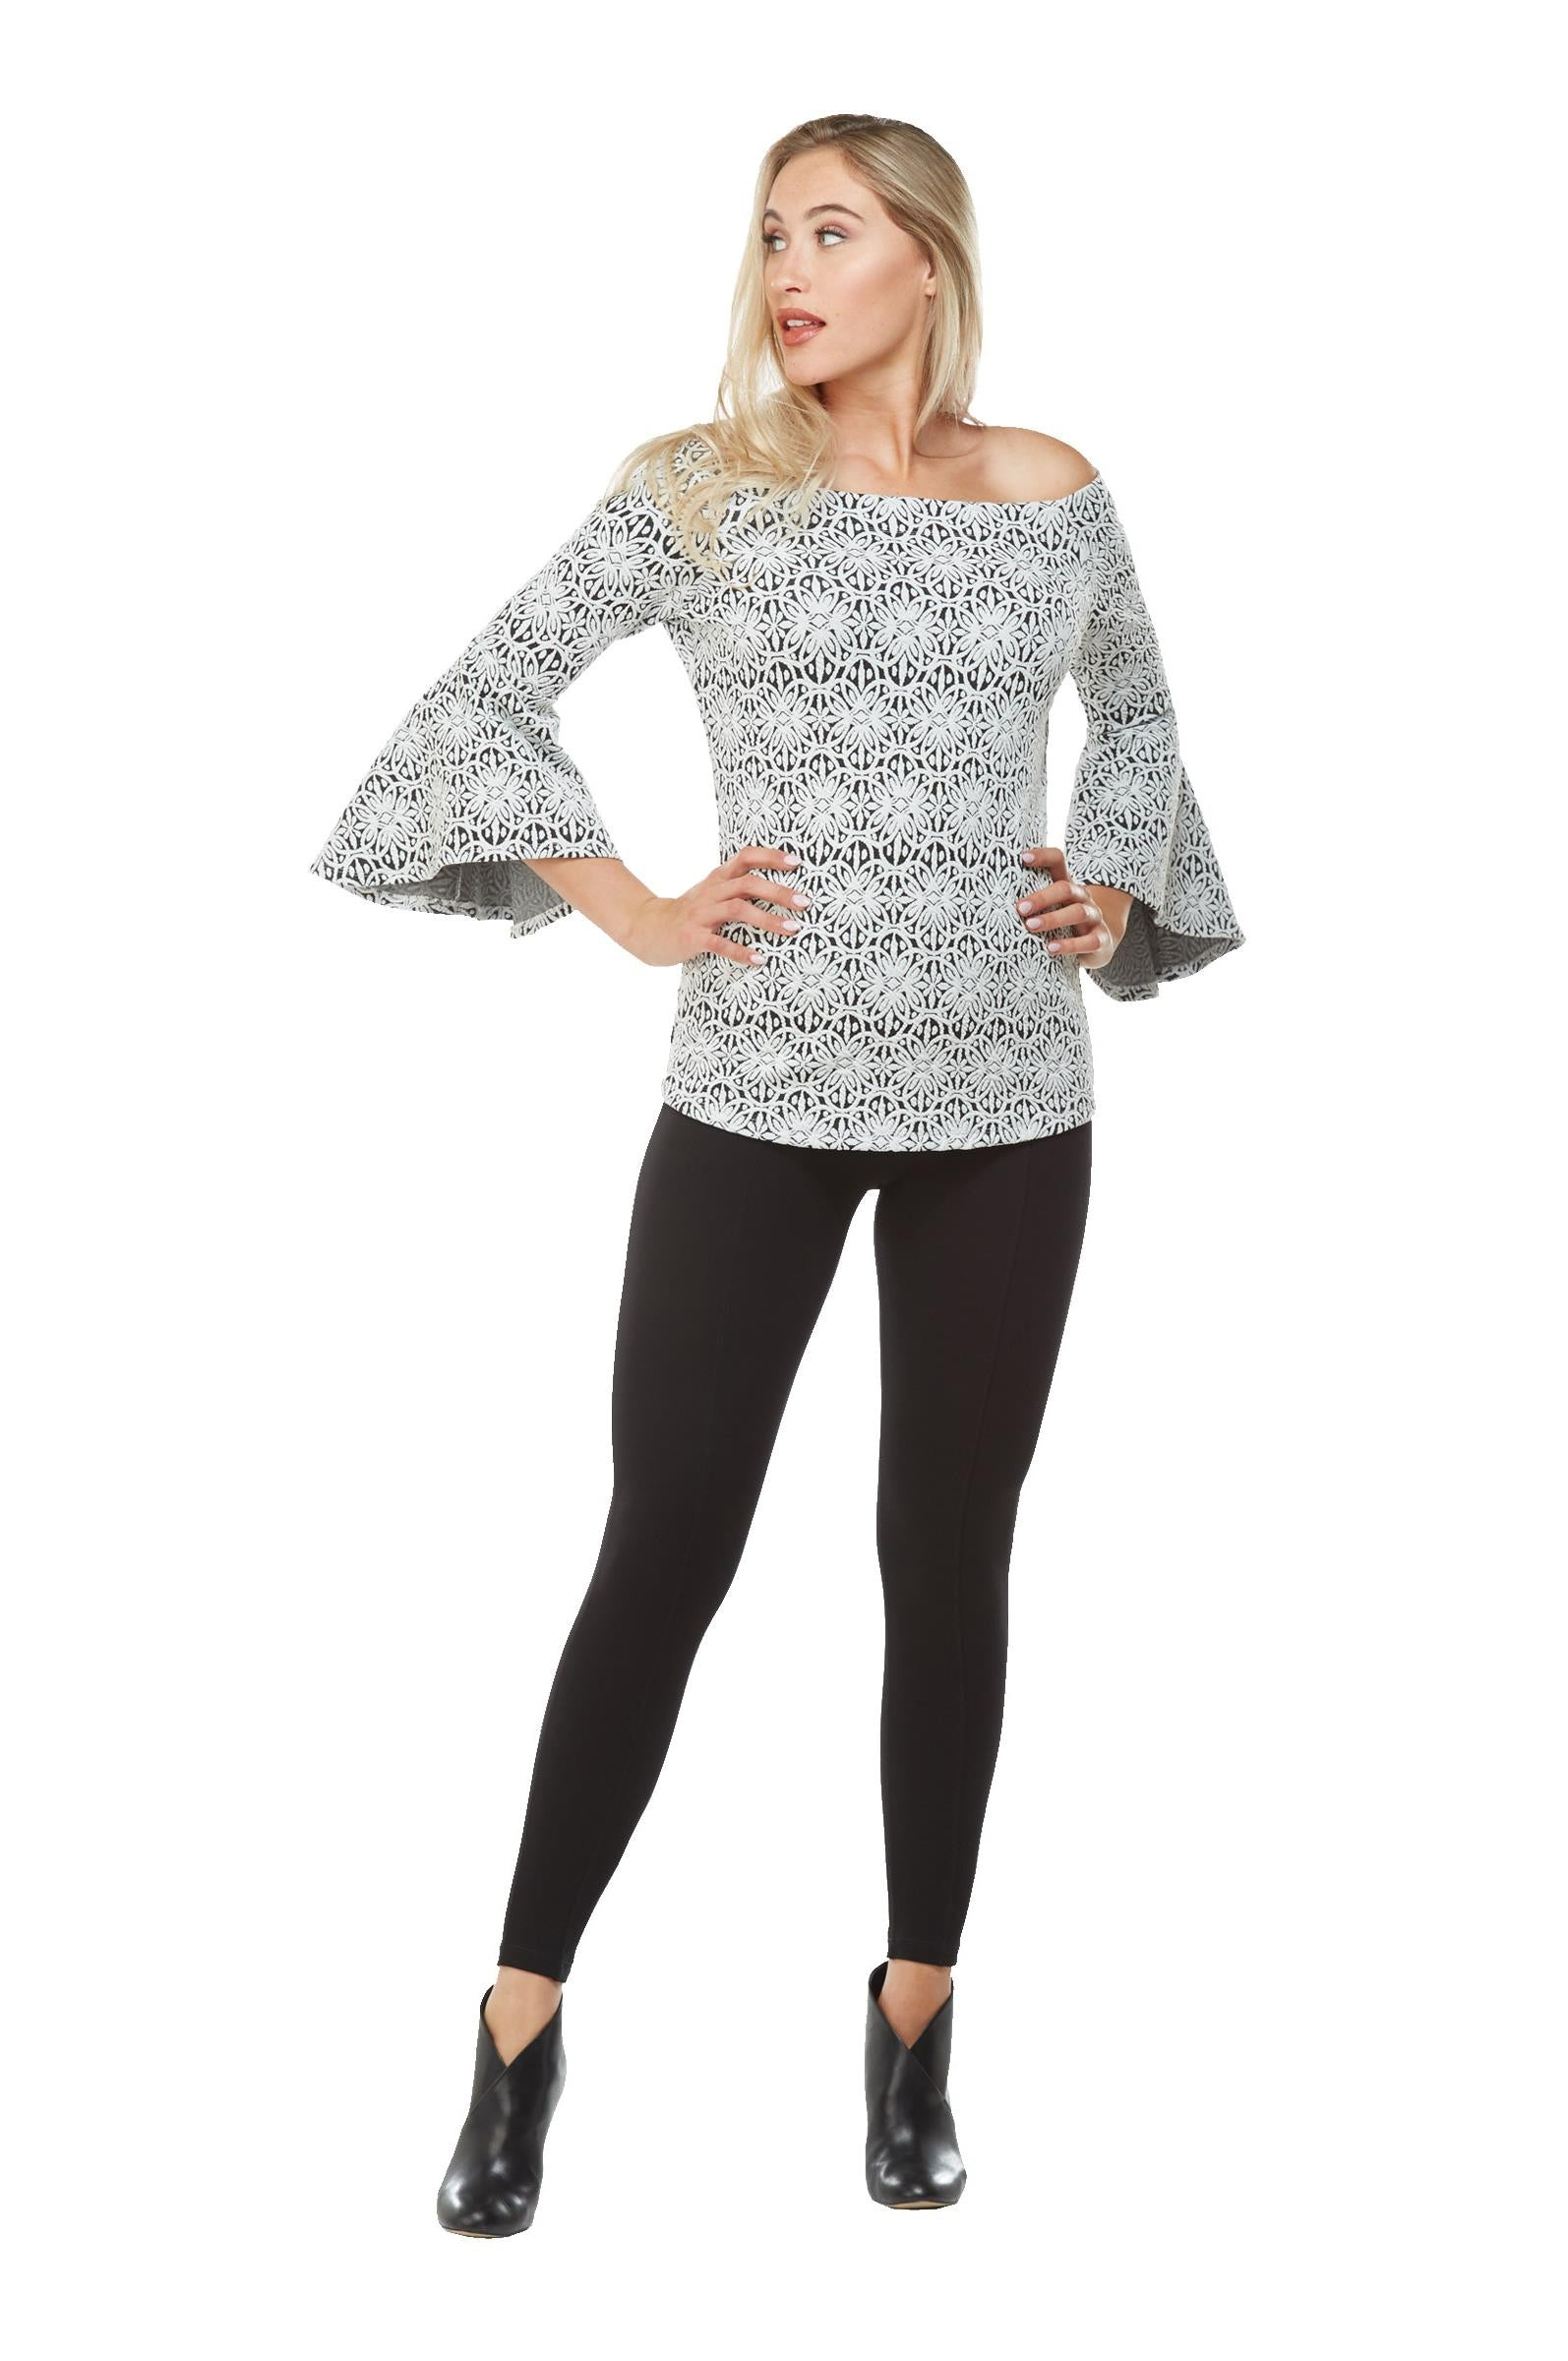 Full view woman wearing black/white off the shoulder jacquard knit  bell sleeve top